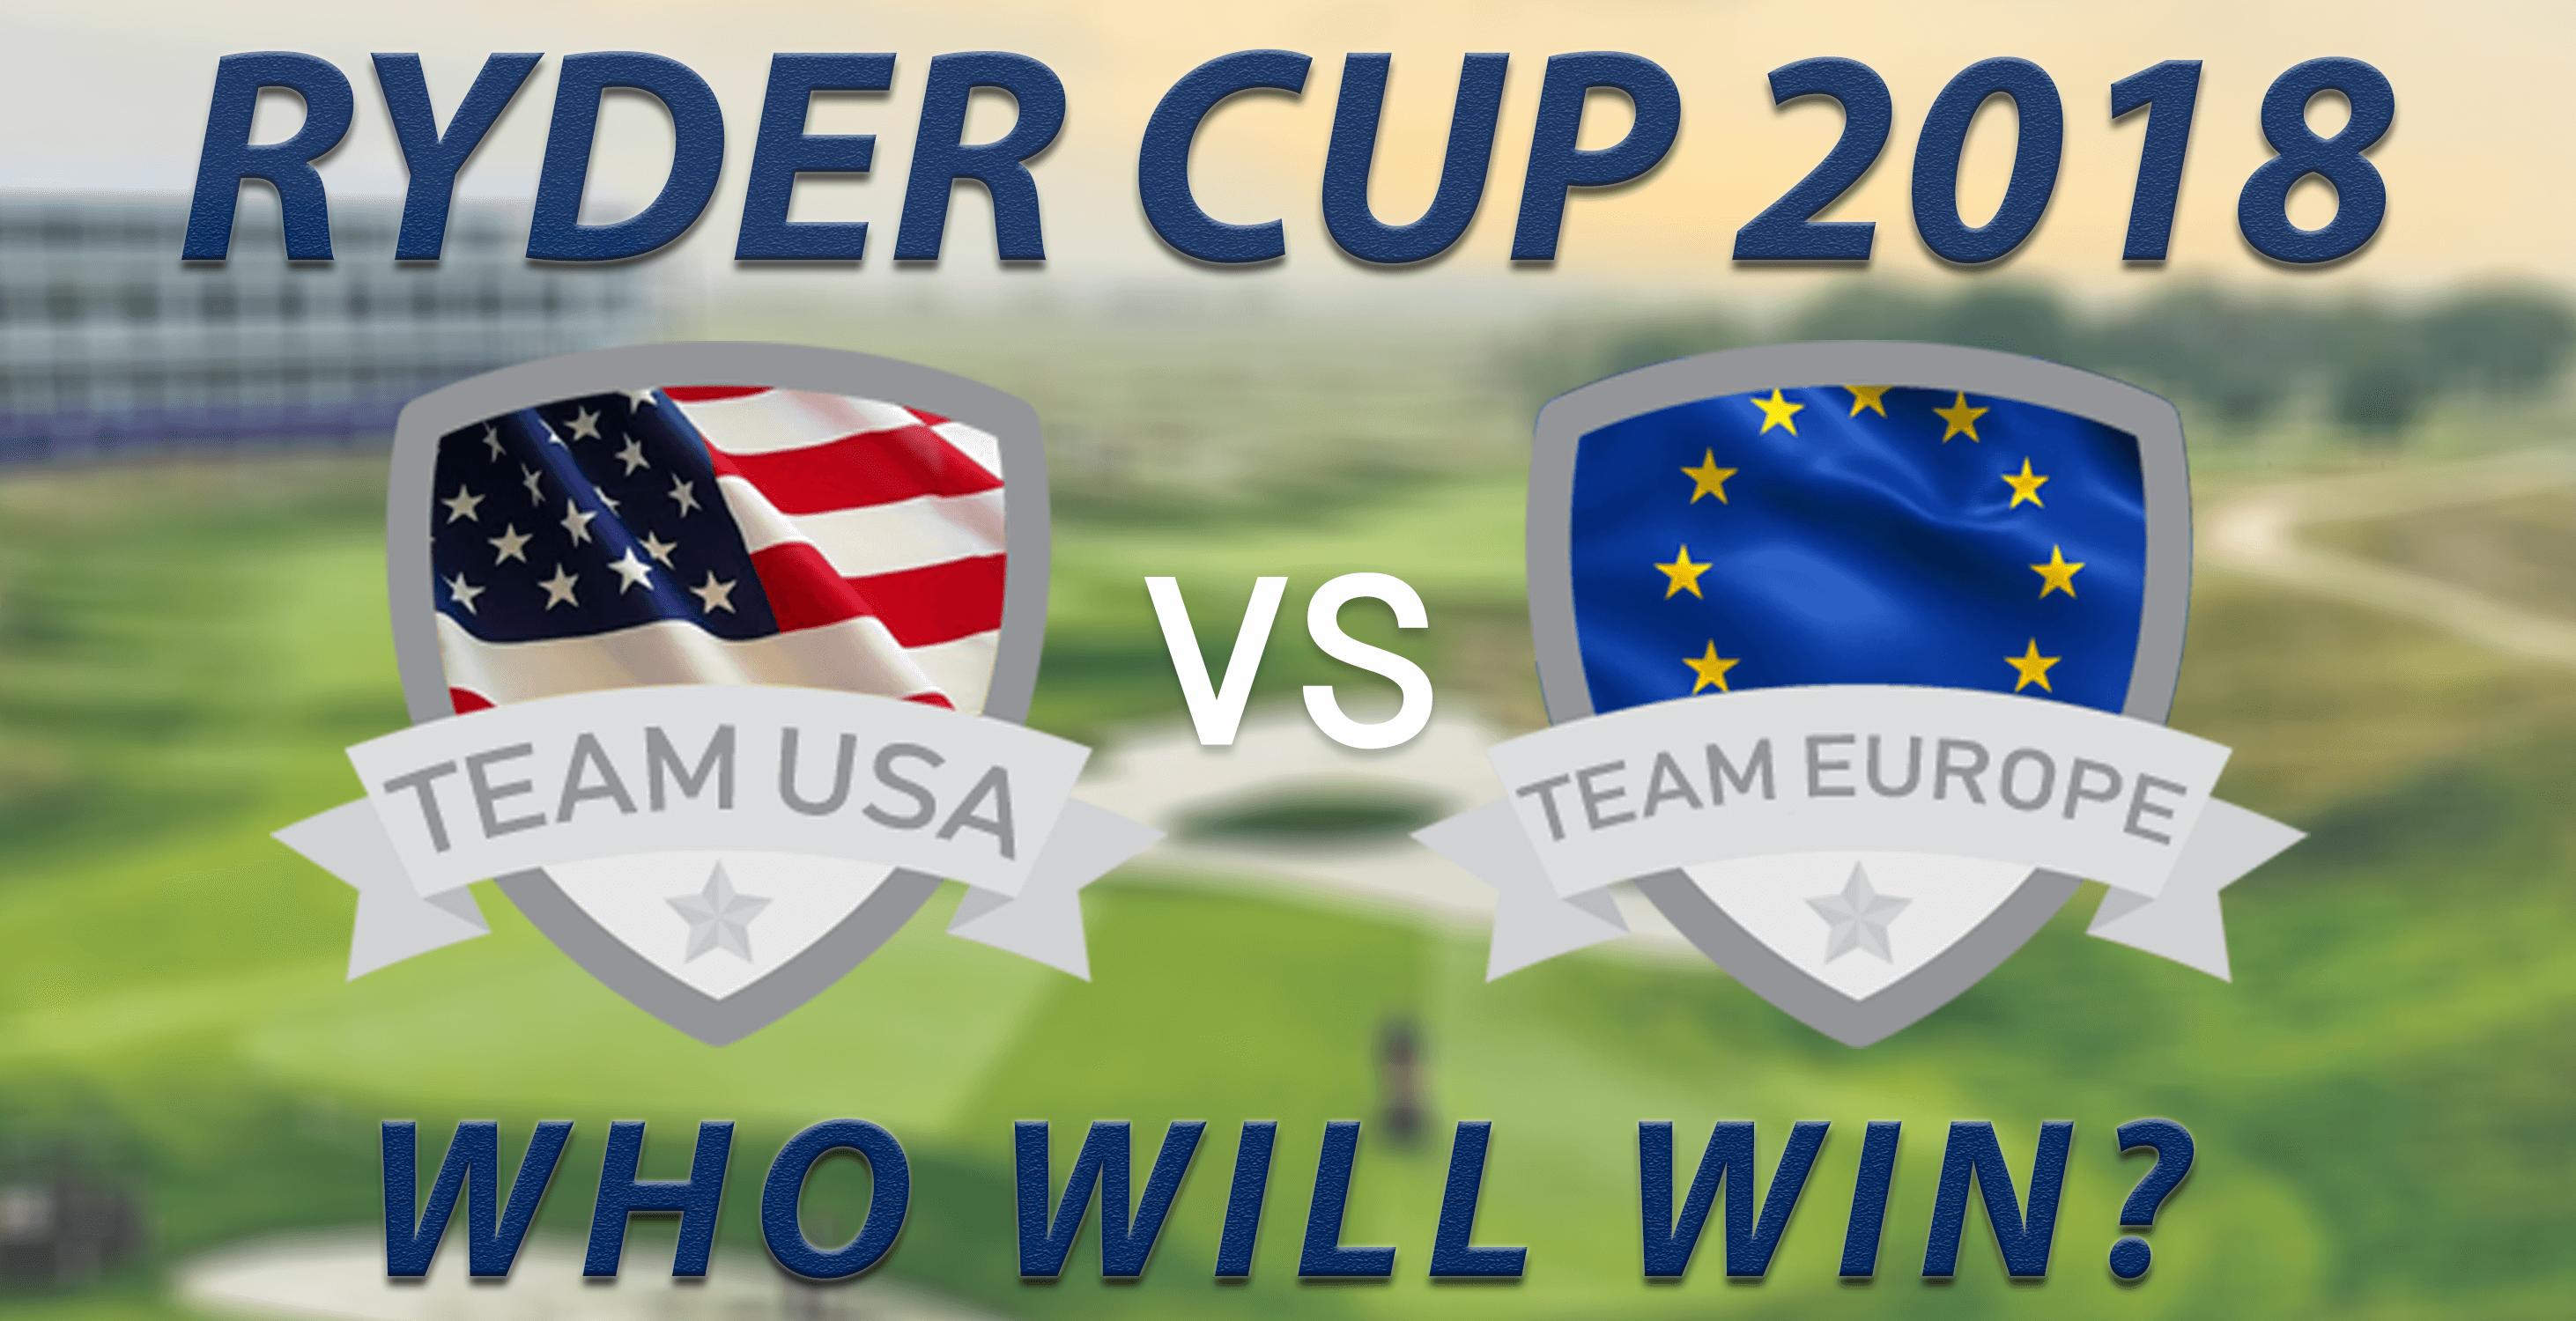 Who Will Win This Years' Ryder Cup? Team Europe vs Team USA